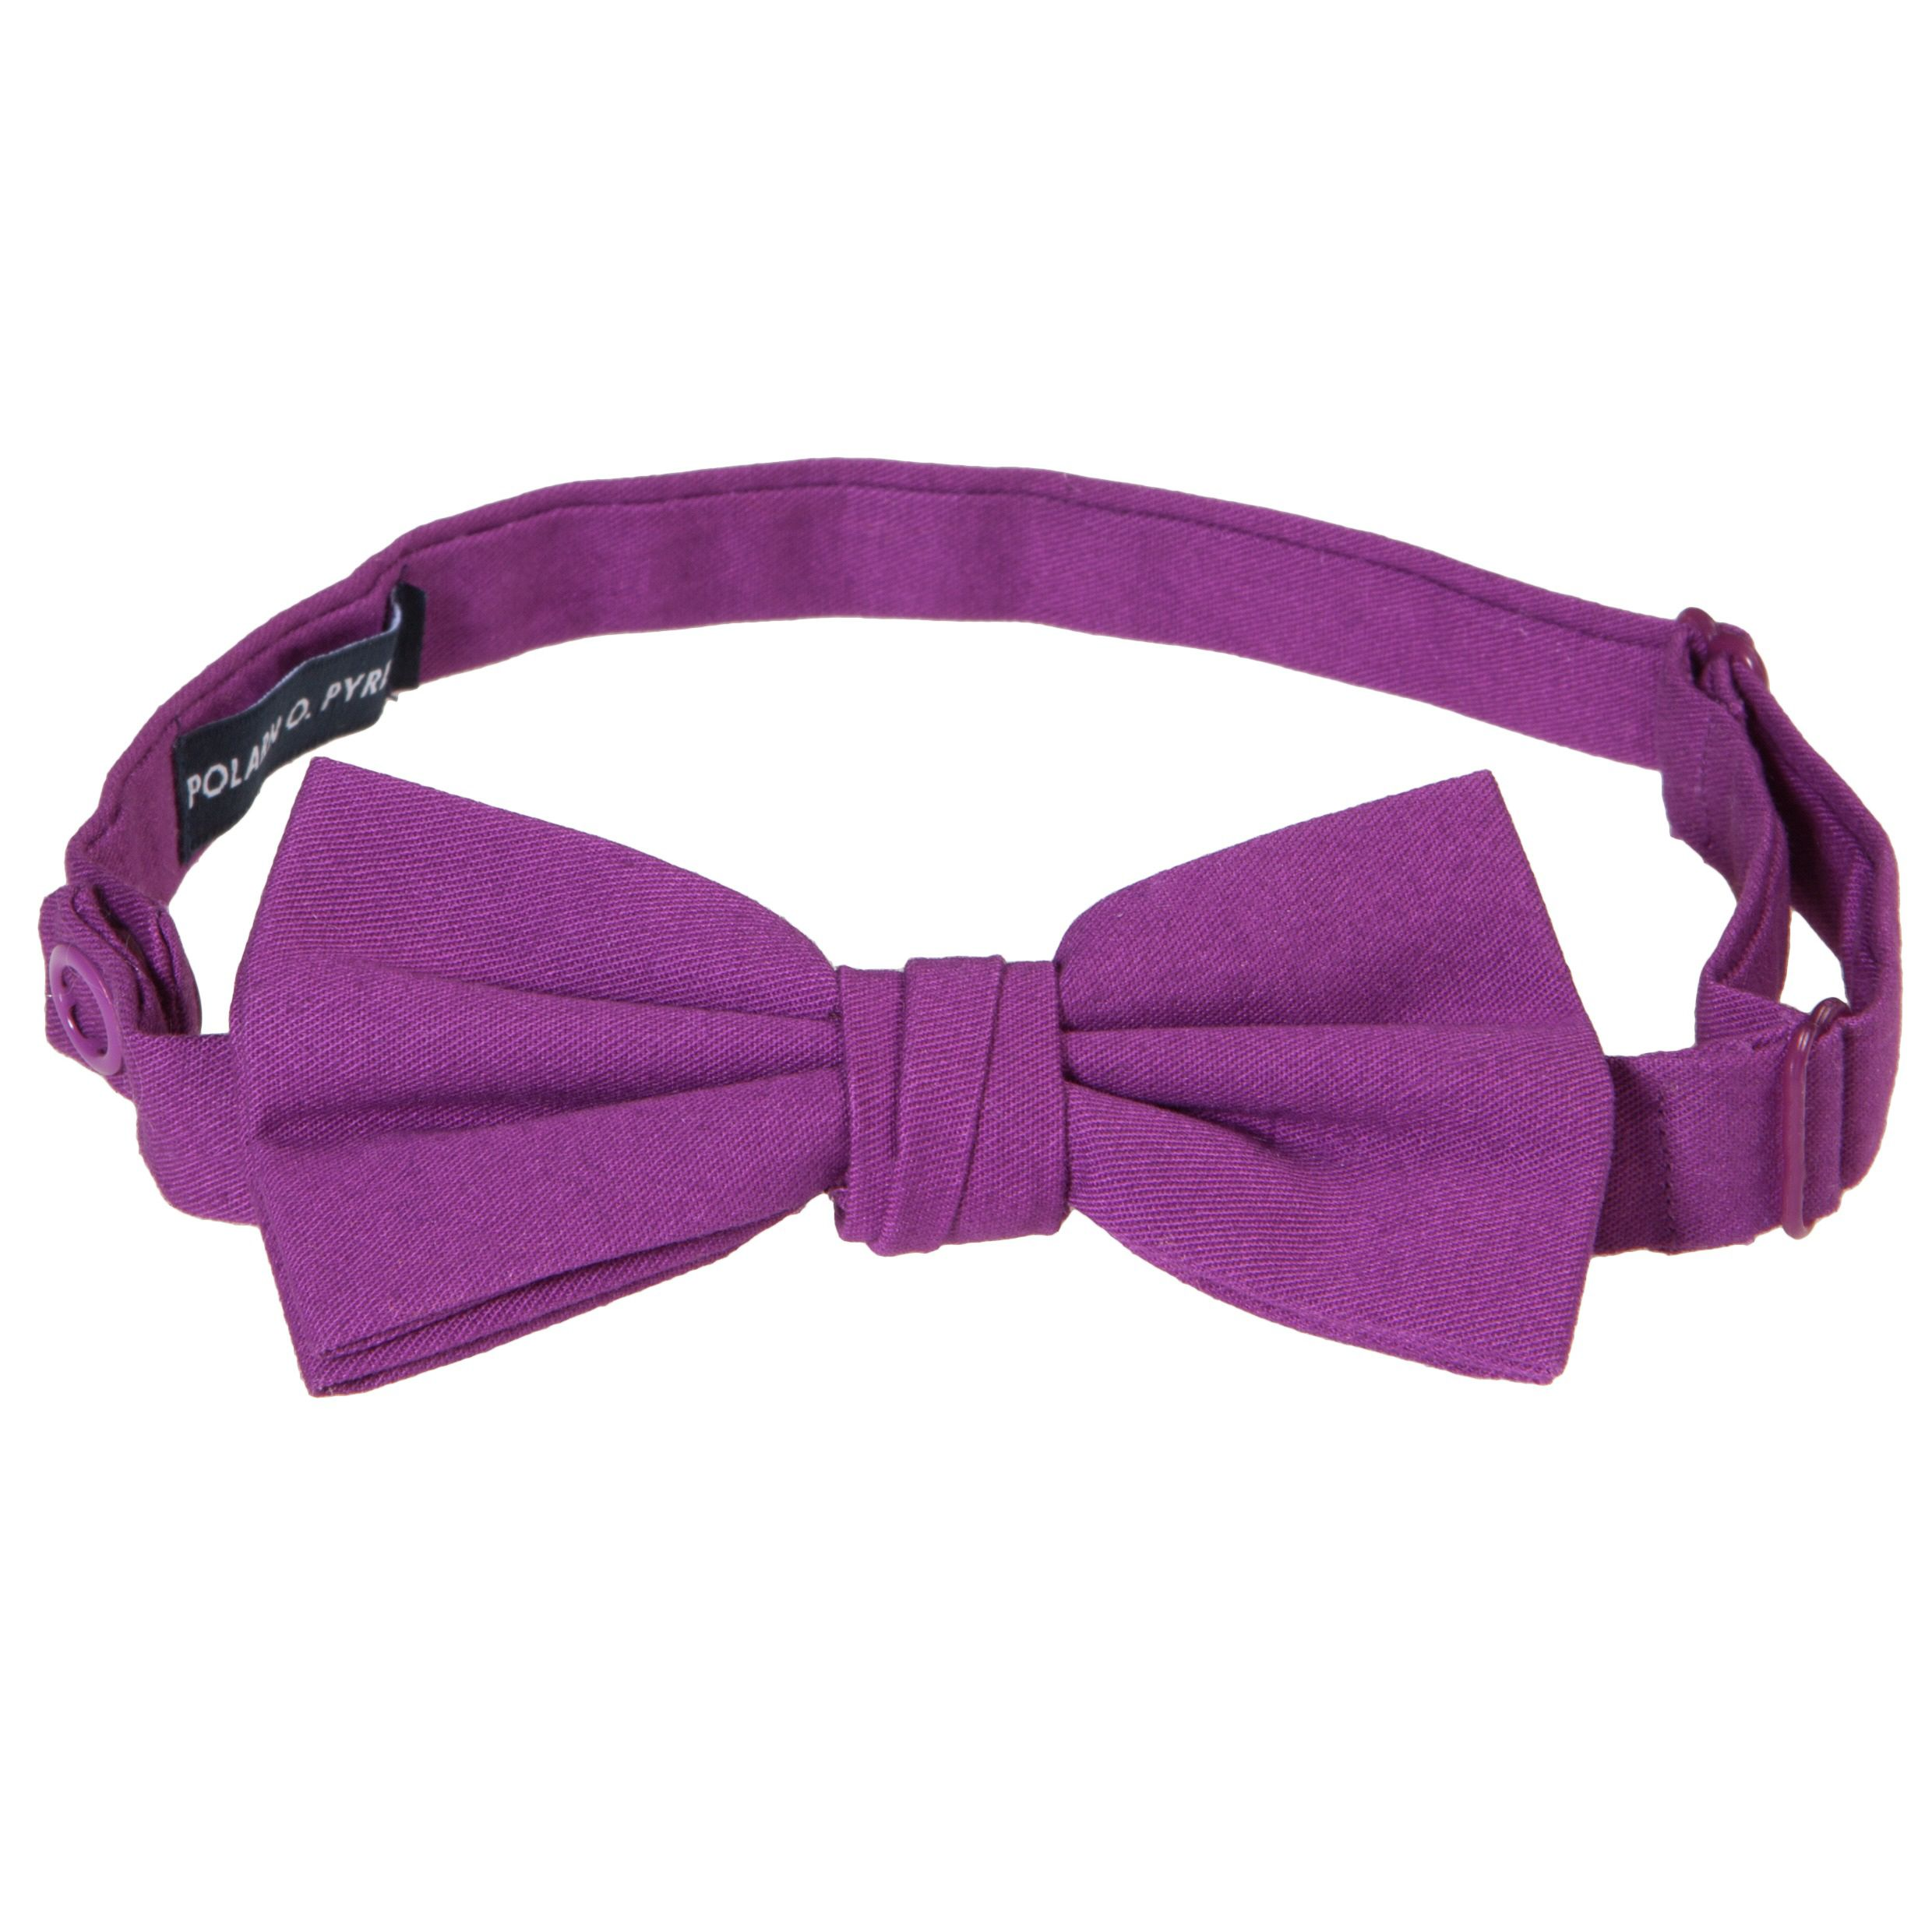 Kids smart bow tie